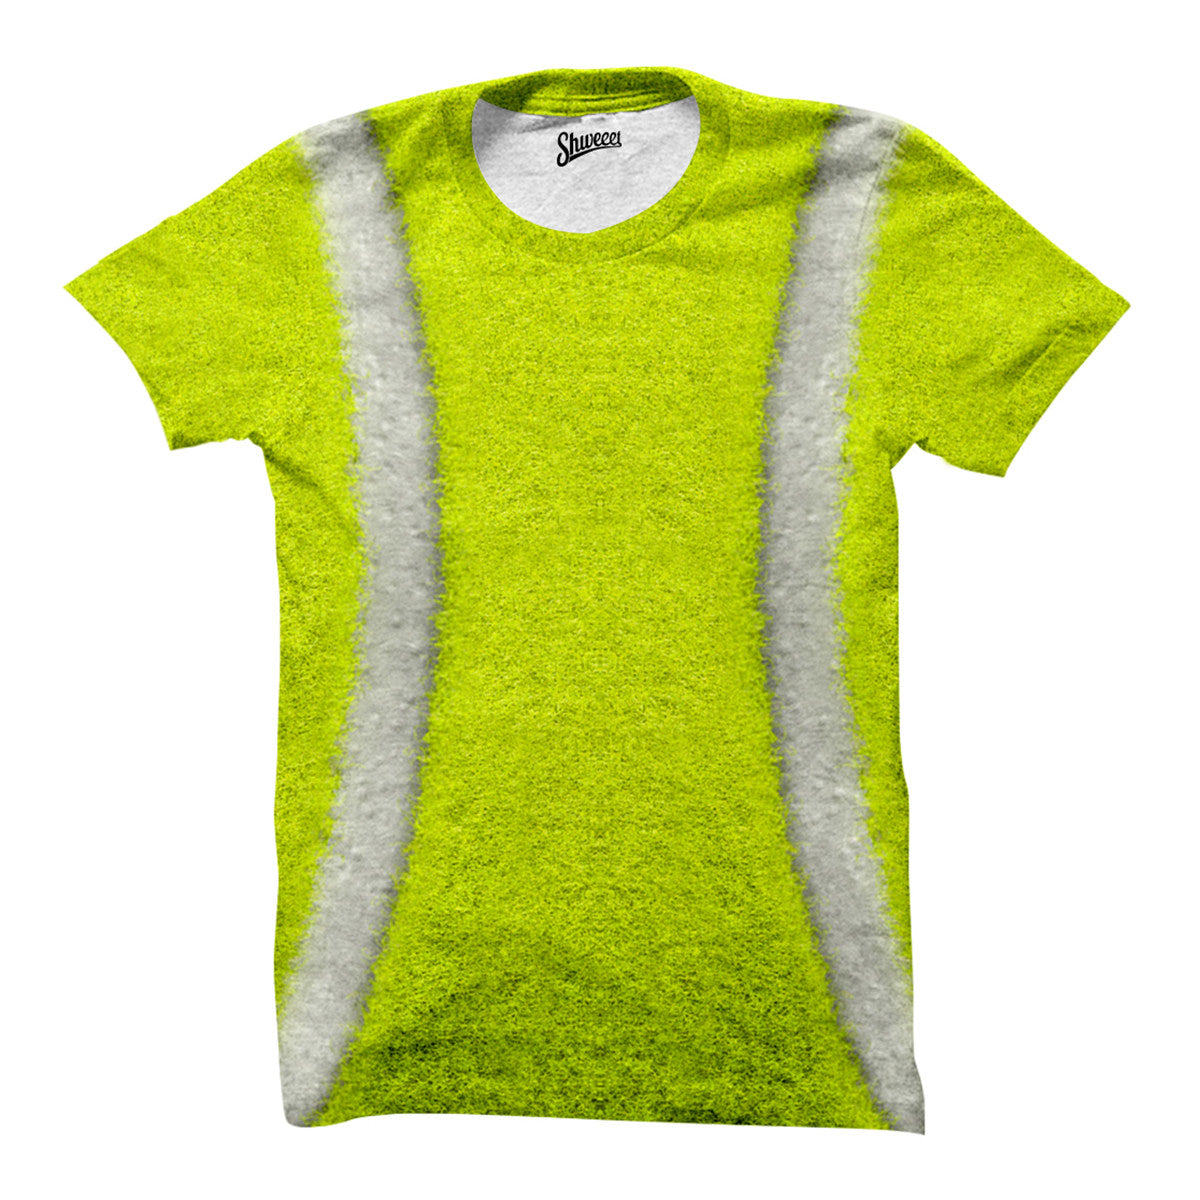 Tennis T-shirt - Shweeet